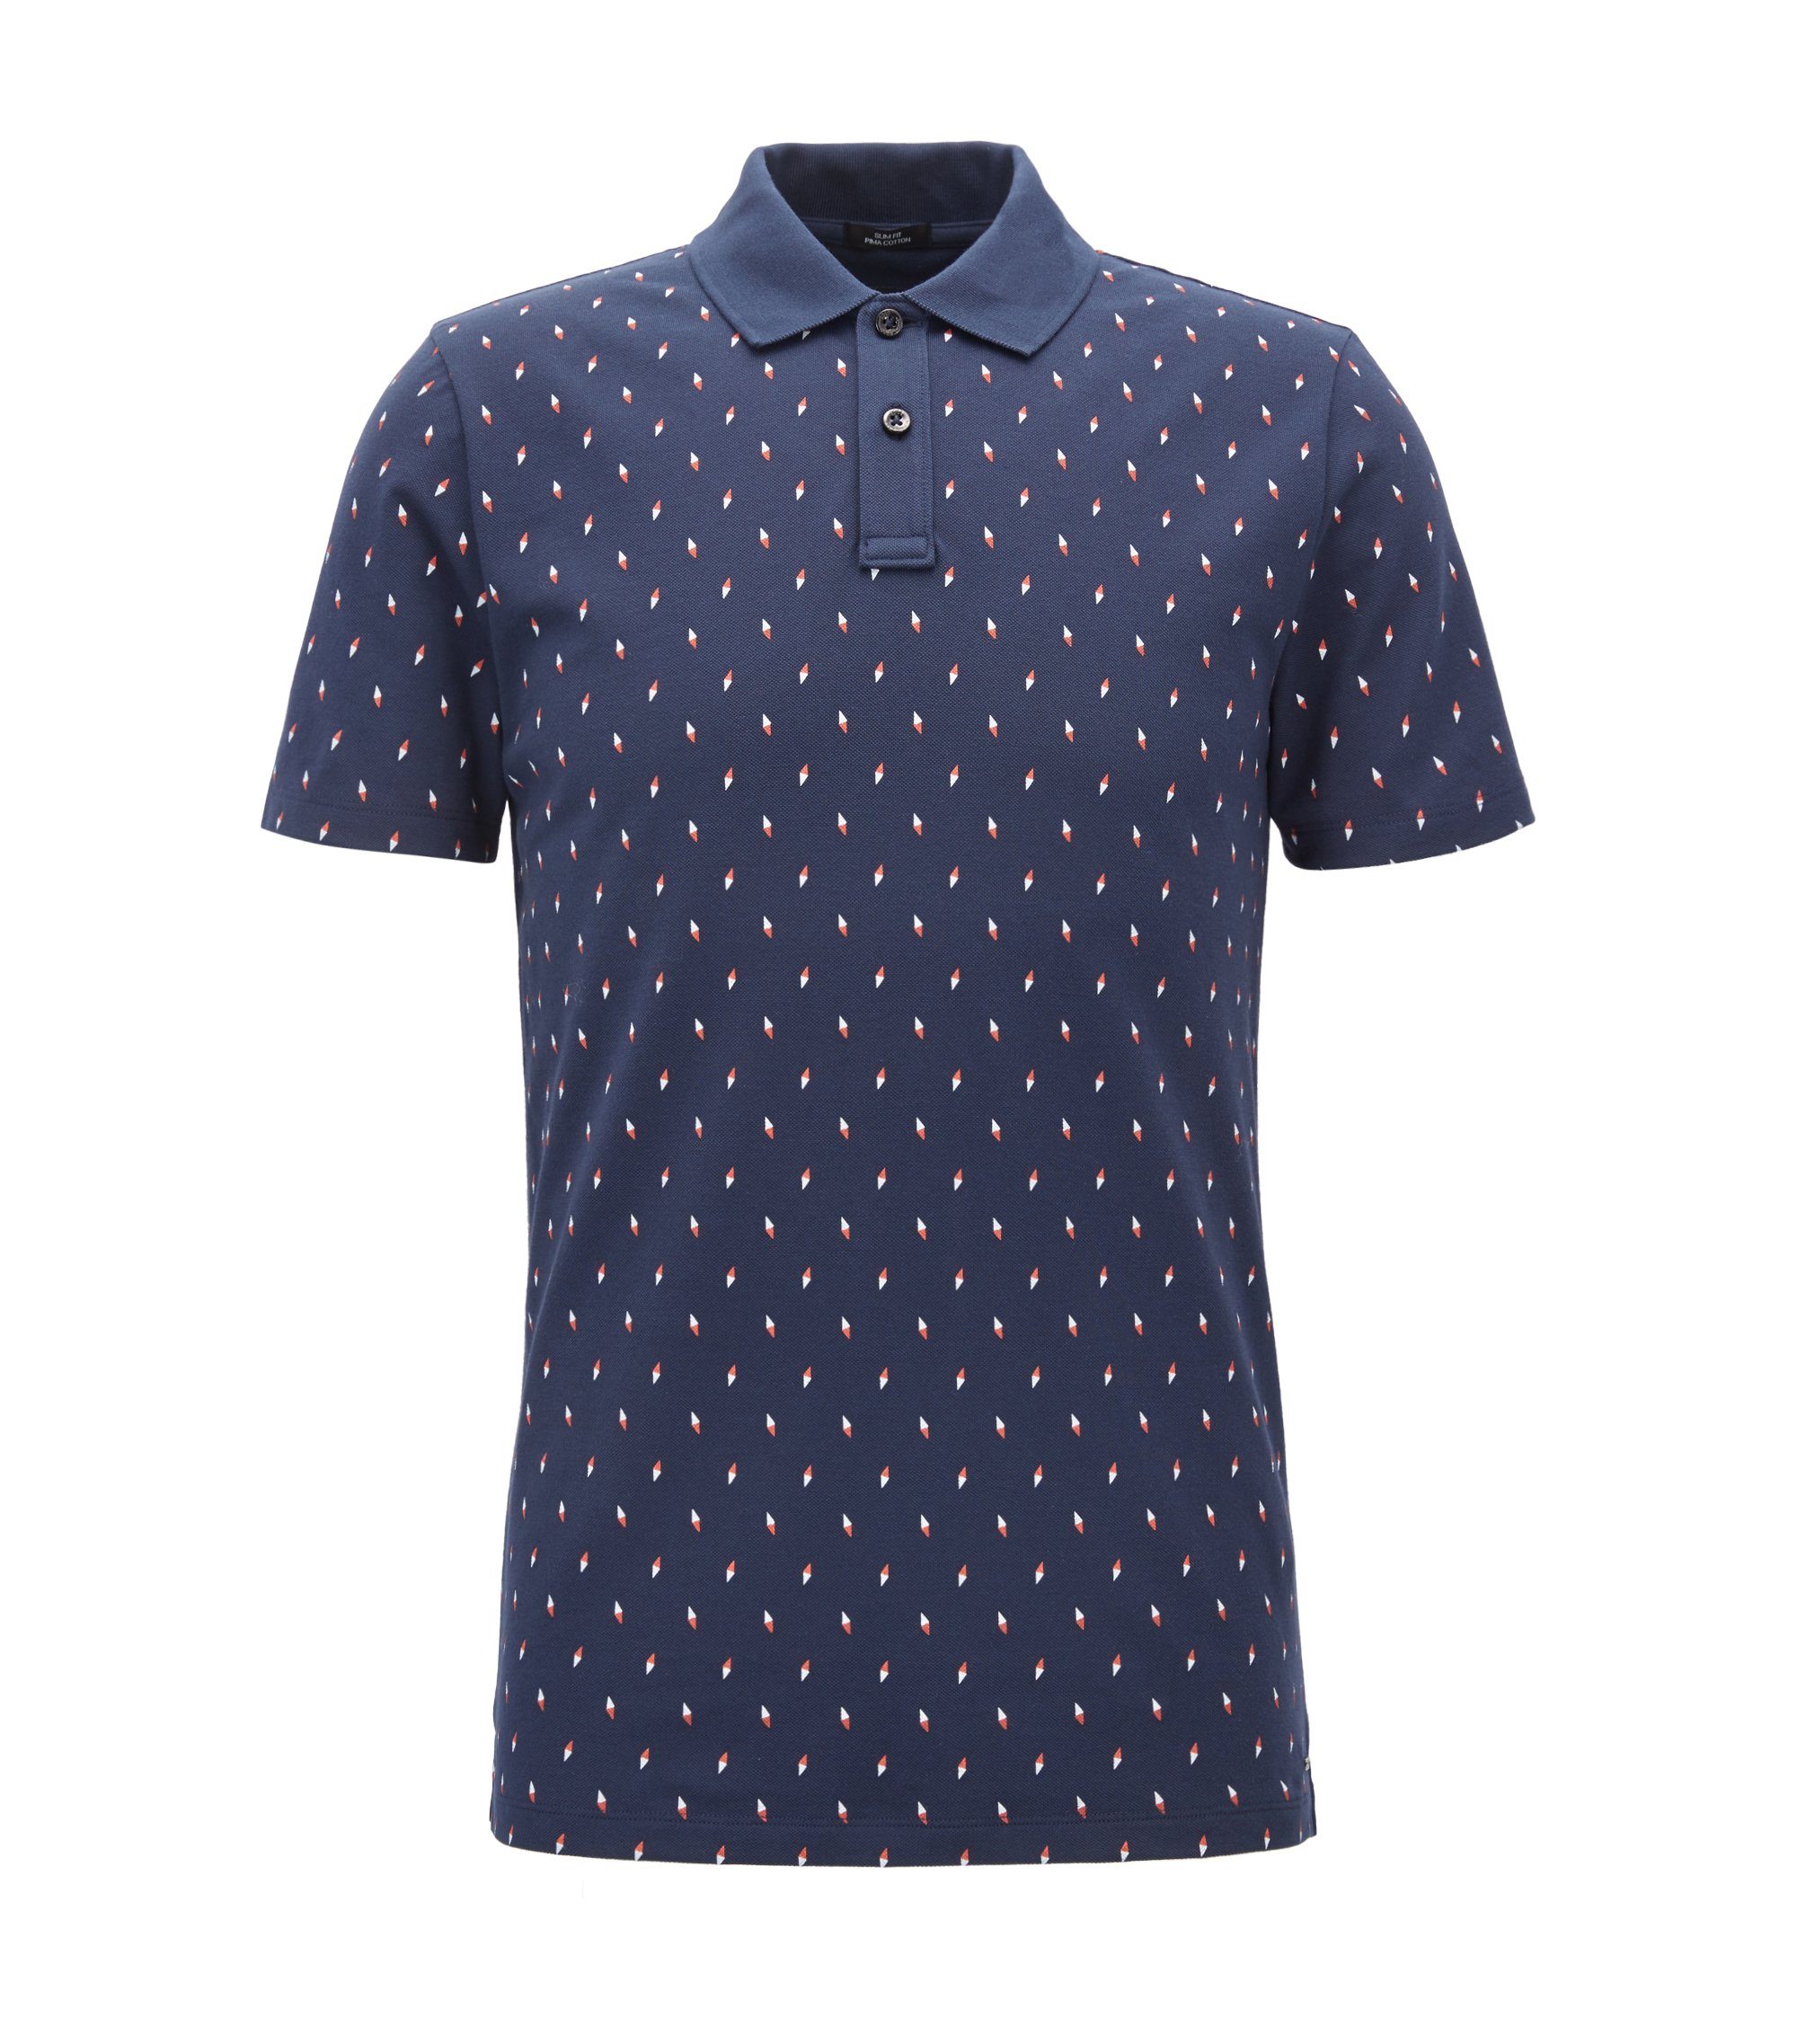 Cotton Blend Polo Shirt, Slim Fit | Plater 06, Dark Blue